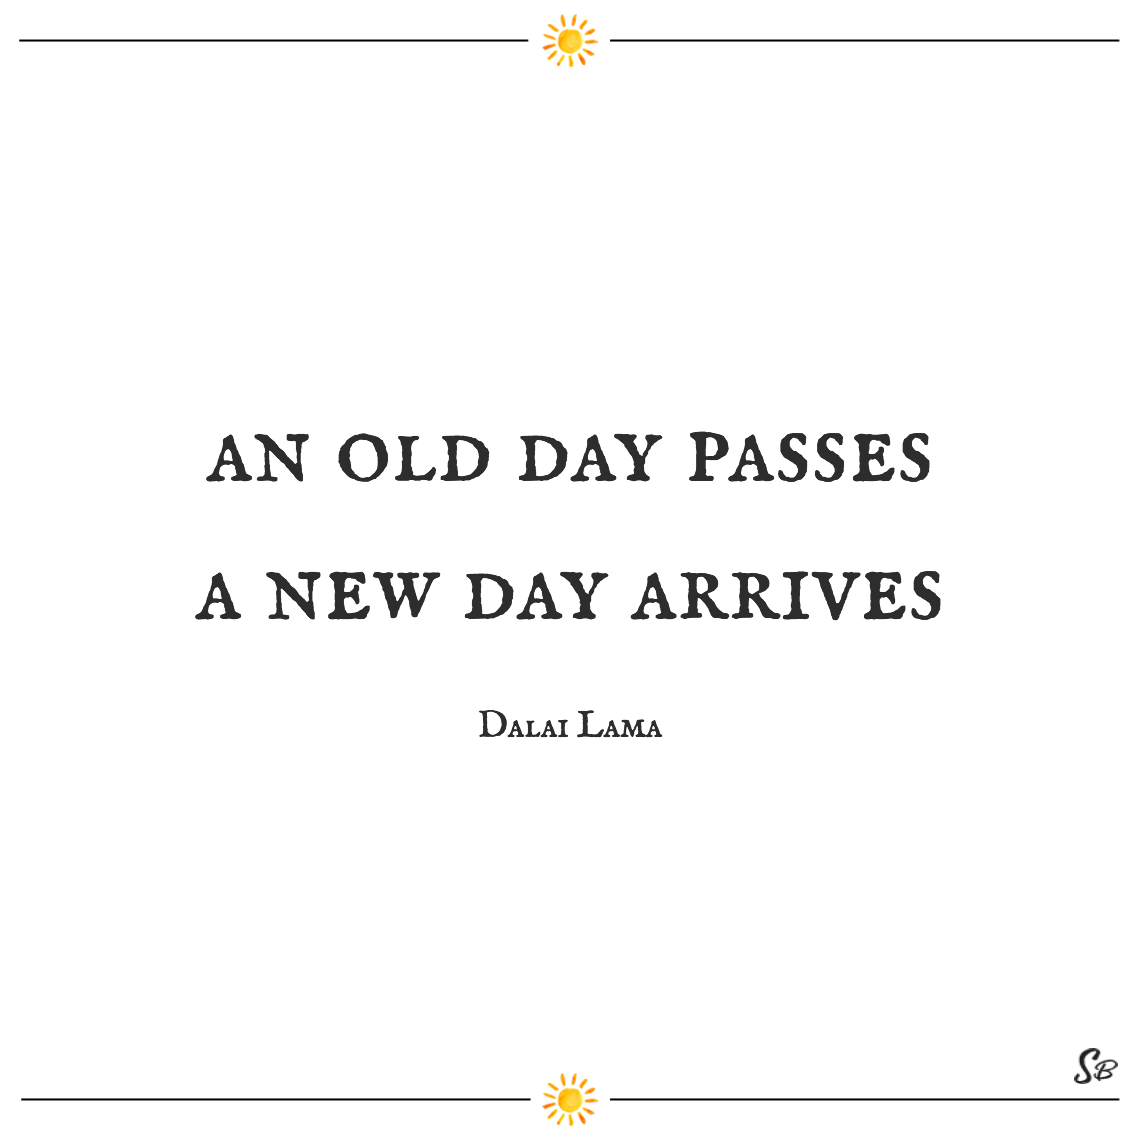 An old day passes a new day arrives dalai lama